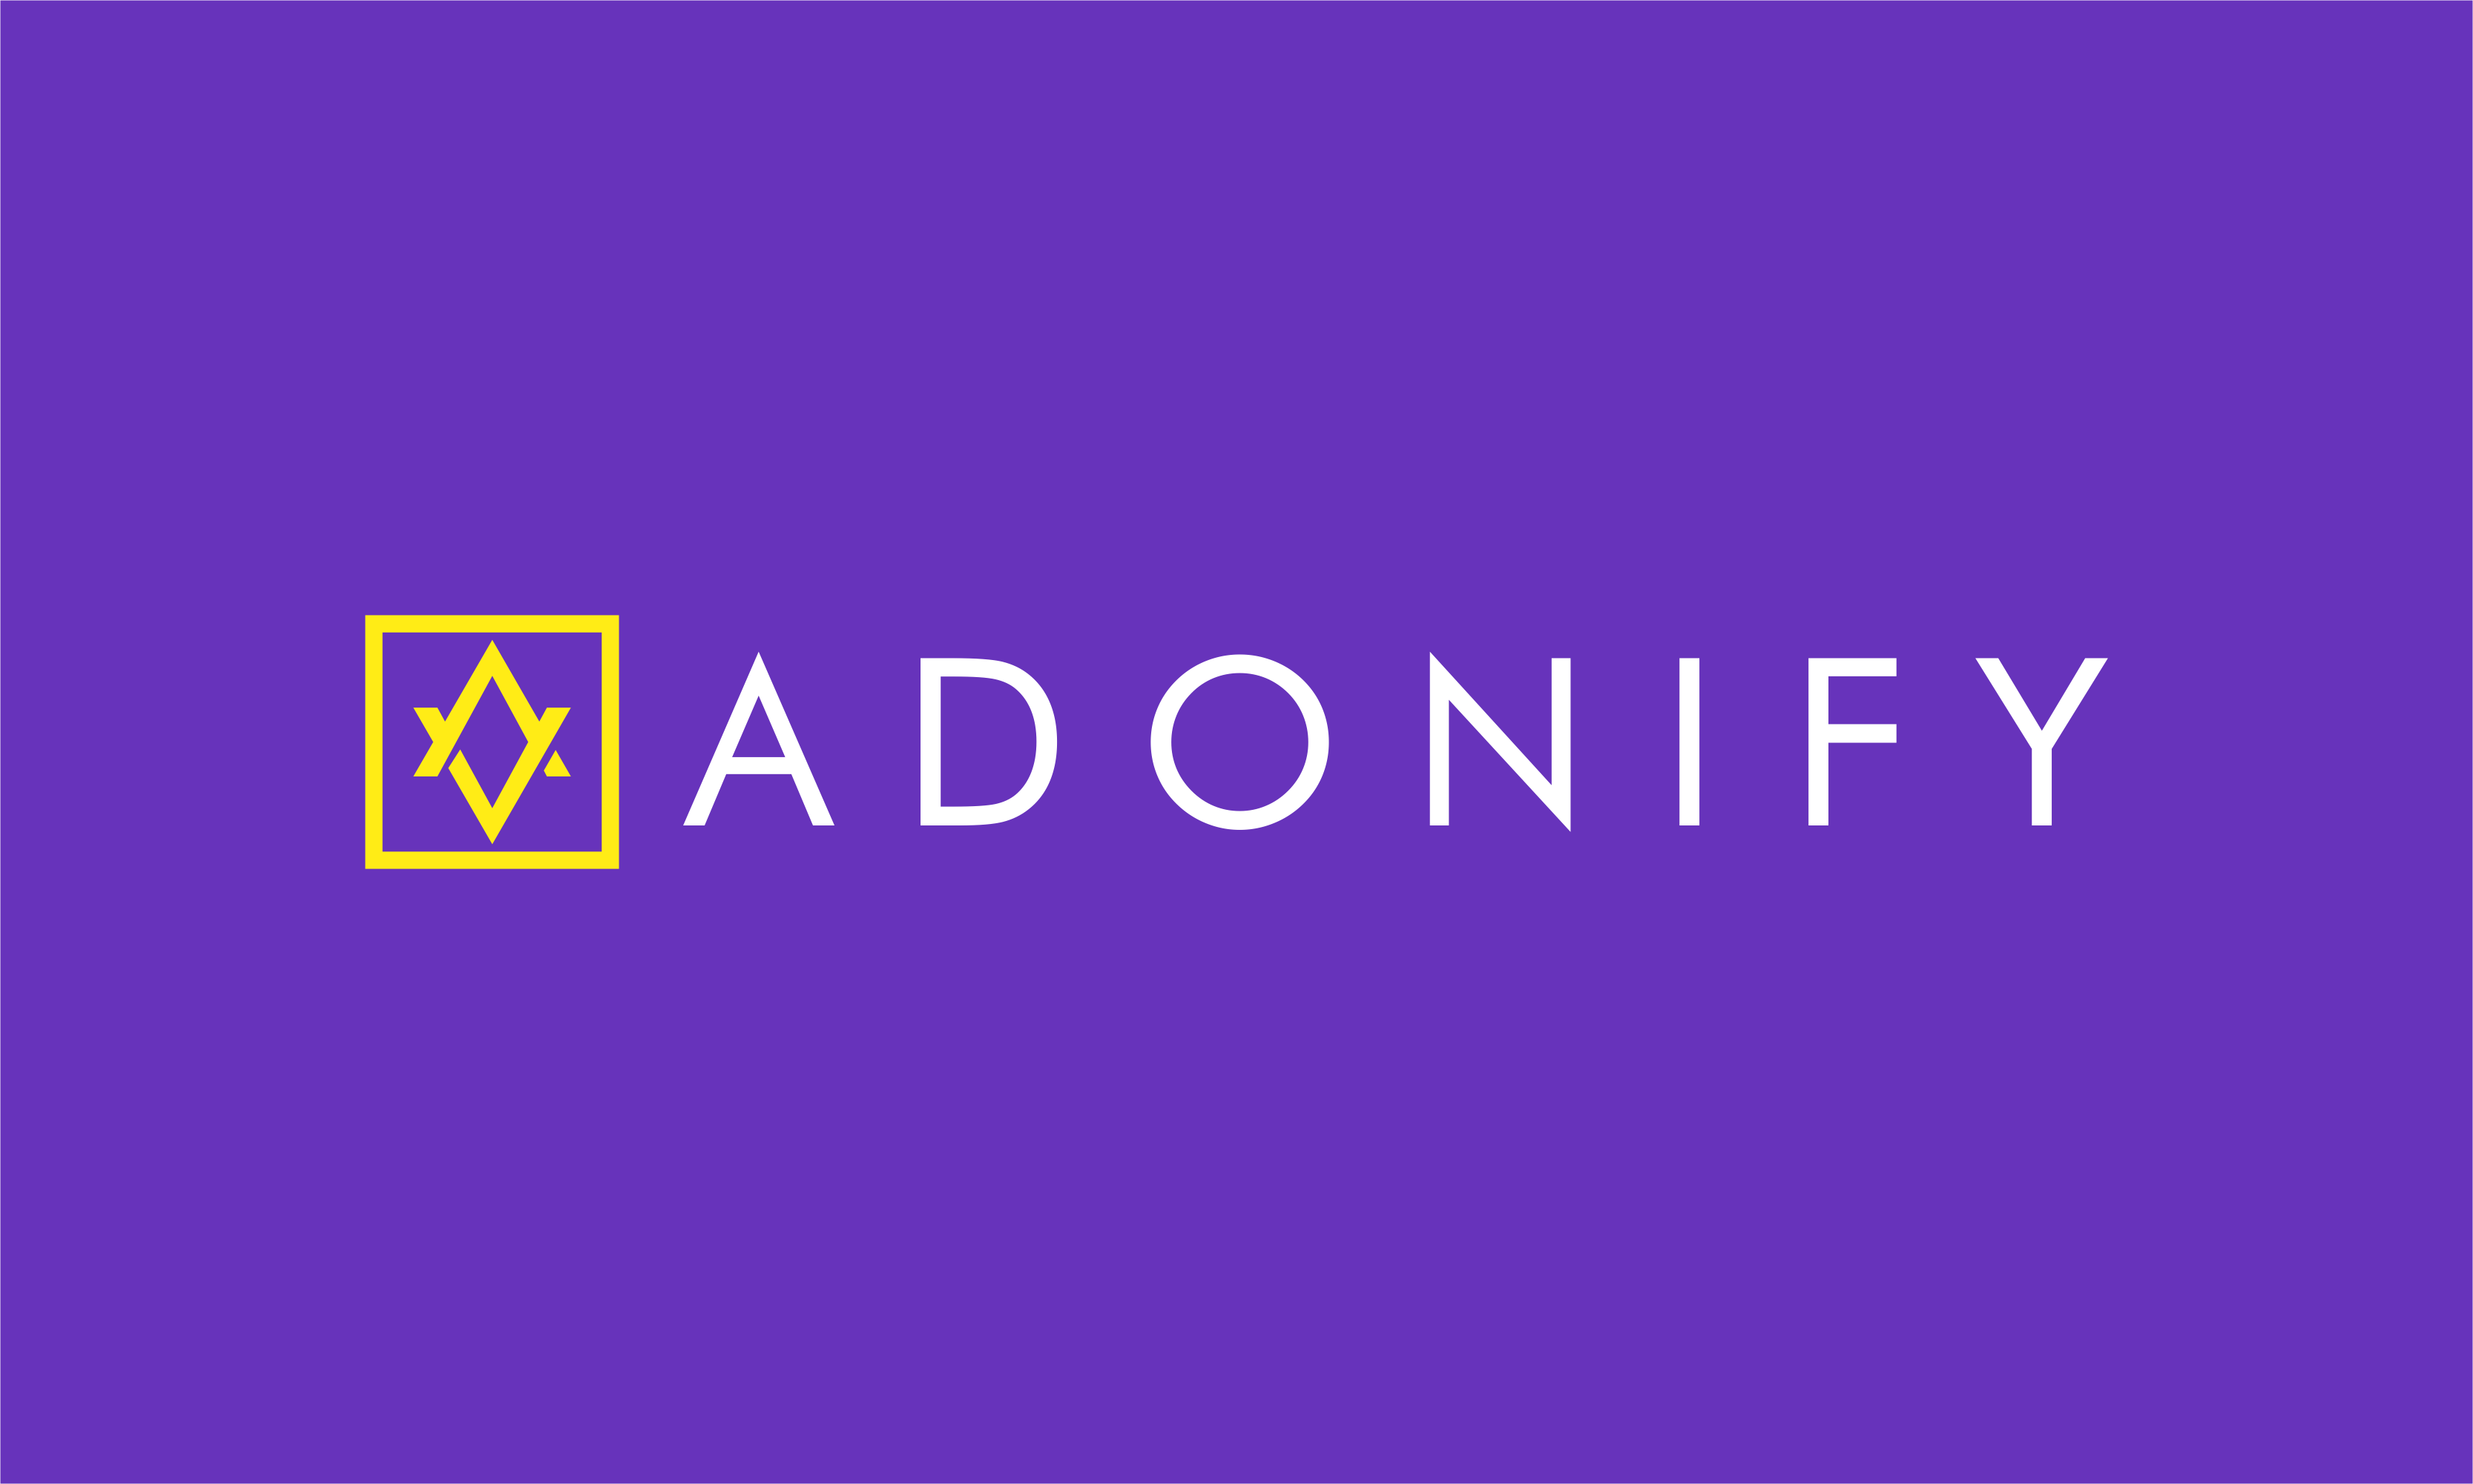 Adonify - Advertising startup name for sale